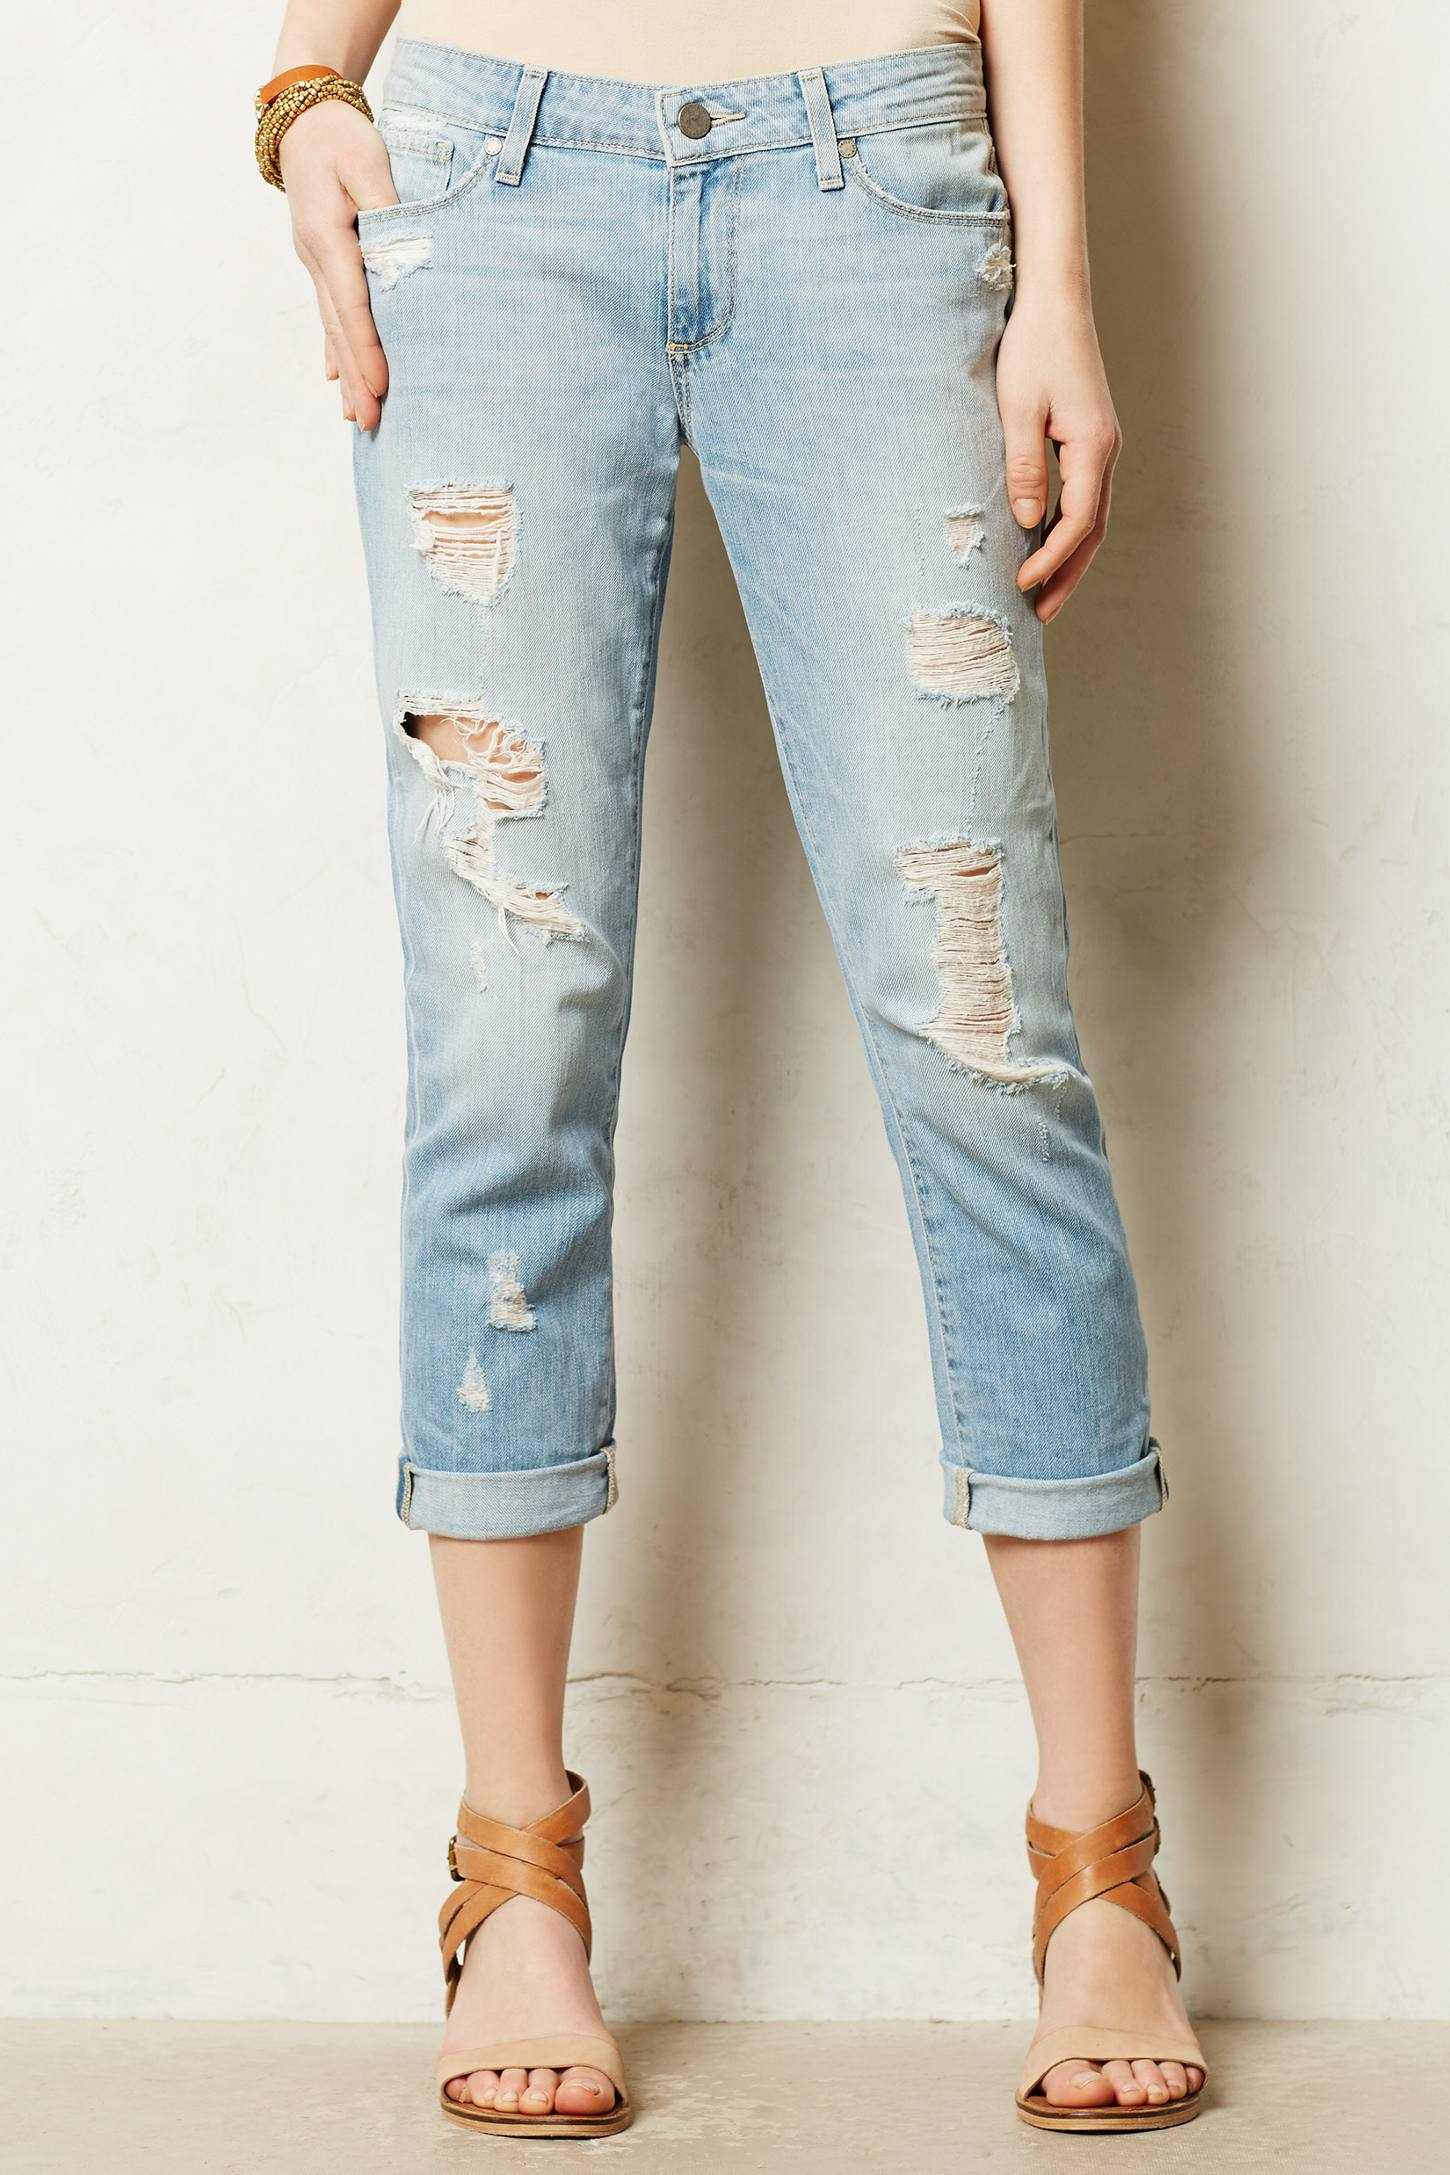 Women's Sam boyfriend jeans. SIGN UP AND RECEIVE 15% OFF YOUR ORDER! Be the first to know about sales, VIP promotions, special events, new arrivals and so much more!